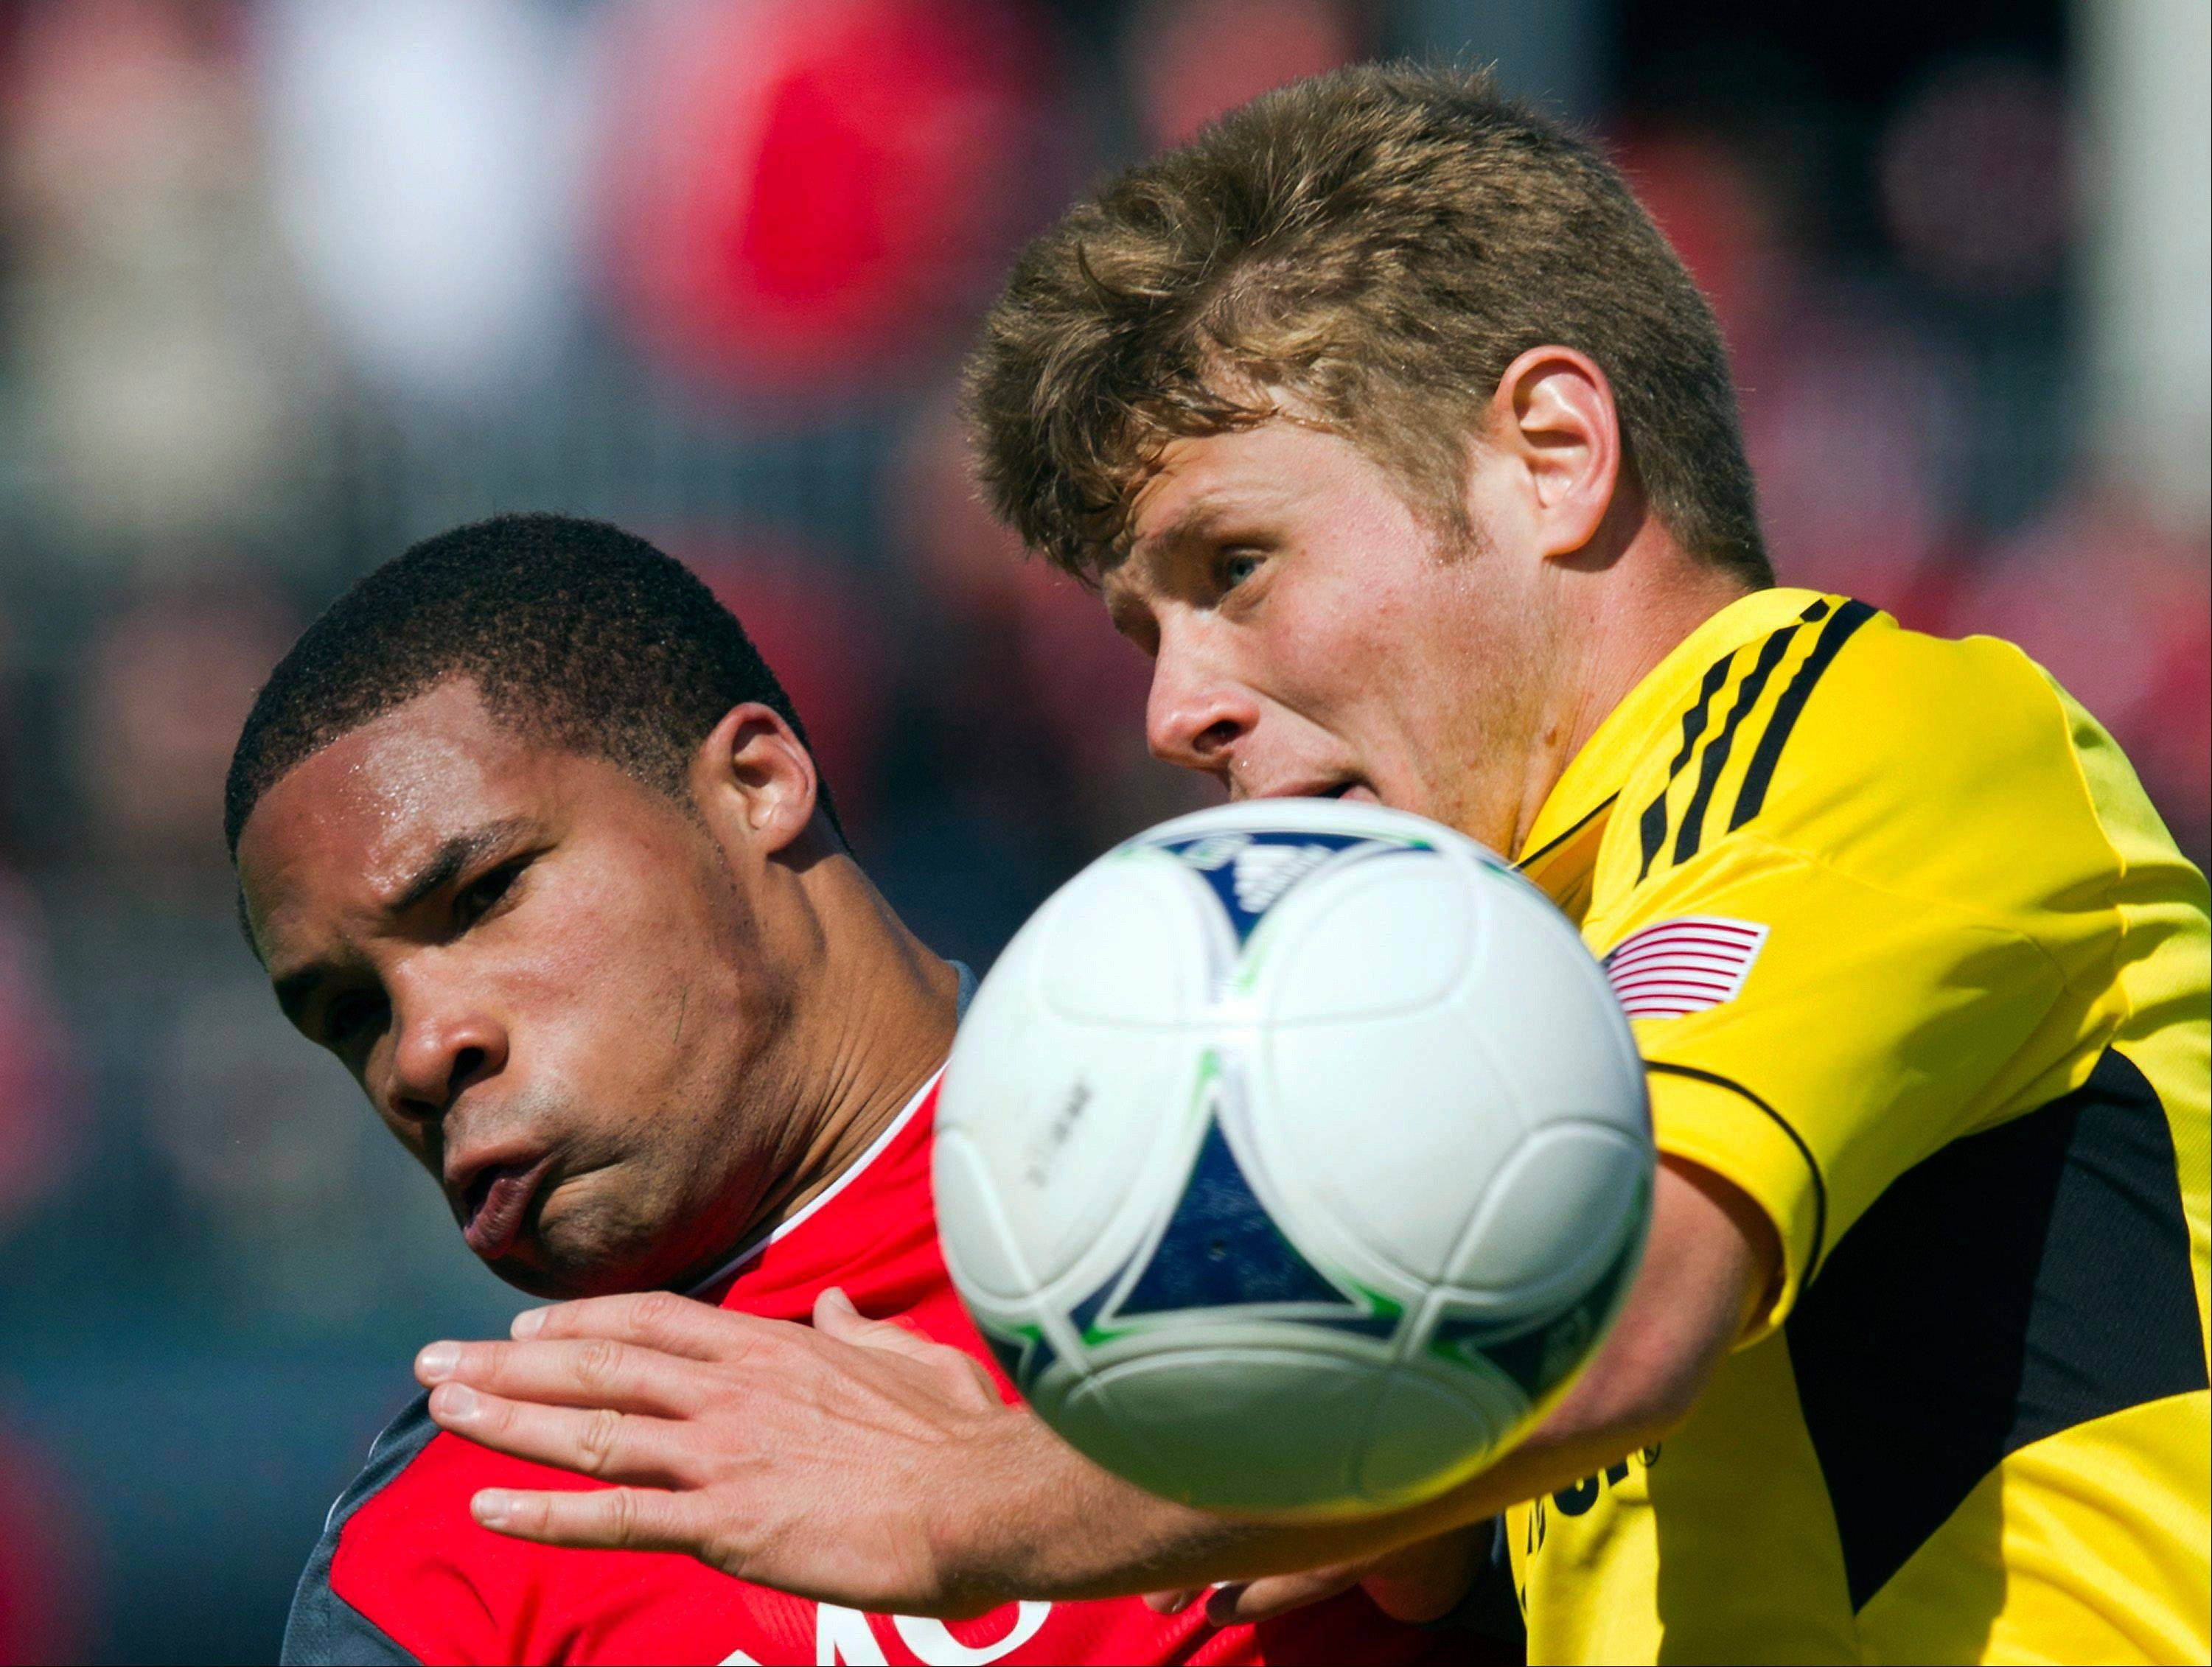 Columbus Crew midfielder Kirk Urso, right, battles for the ball last March with Toronto FC forward Ryan Johnson during a game in Toronto. Urso, 22, was pronounced dead early Sunday after he was found unconscious in a Columbus bar.